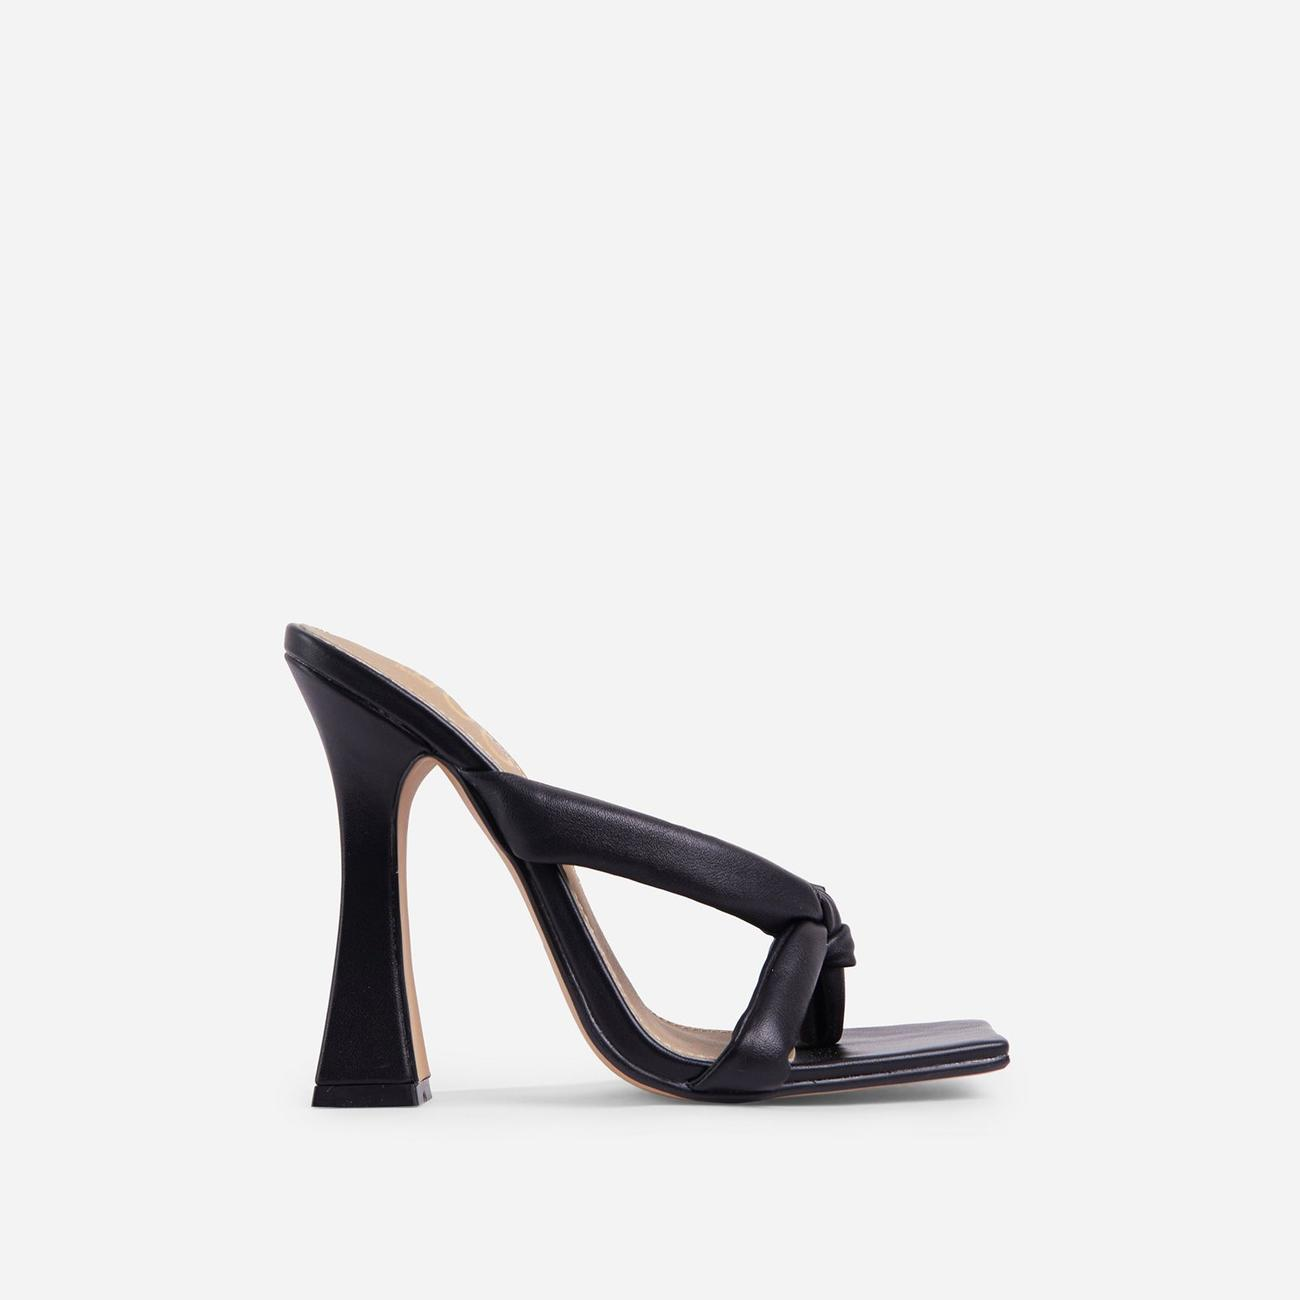 Loyal Padded Cross Strap Square Toe Heel Mule In Black Faux Leather Image 1